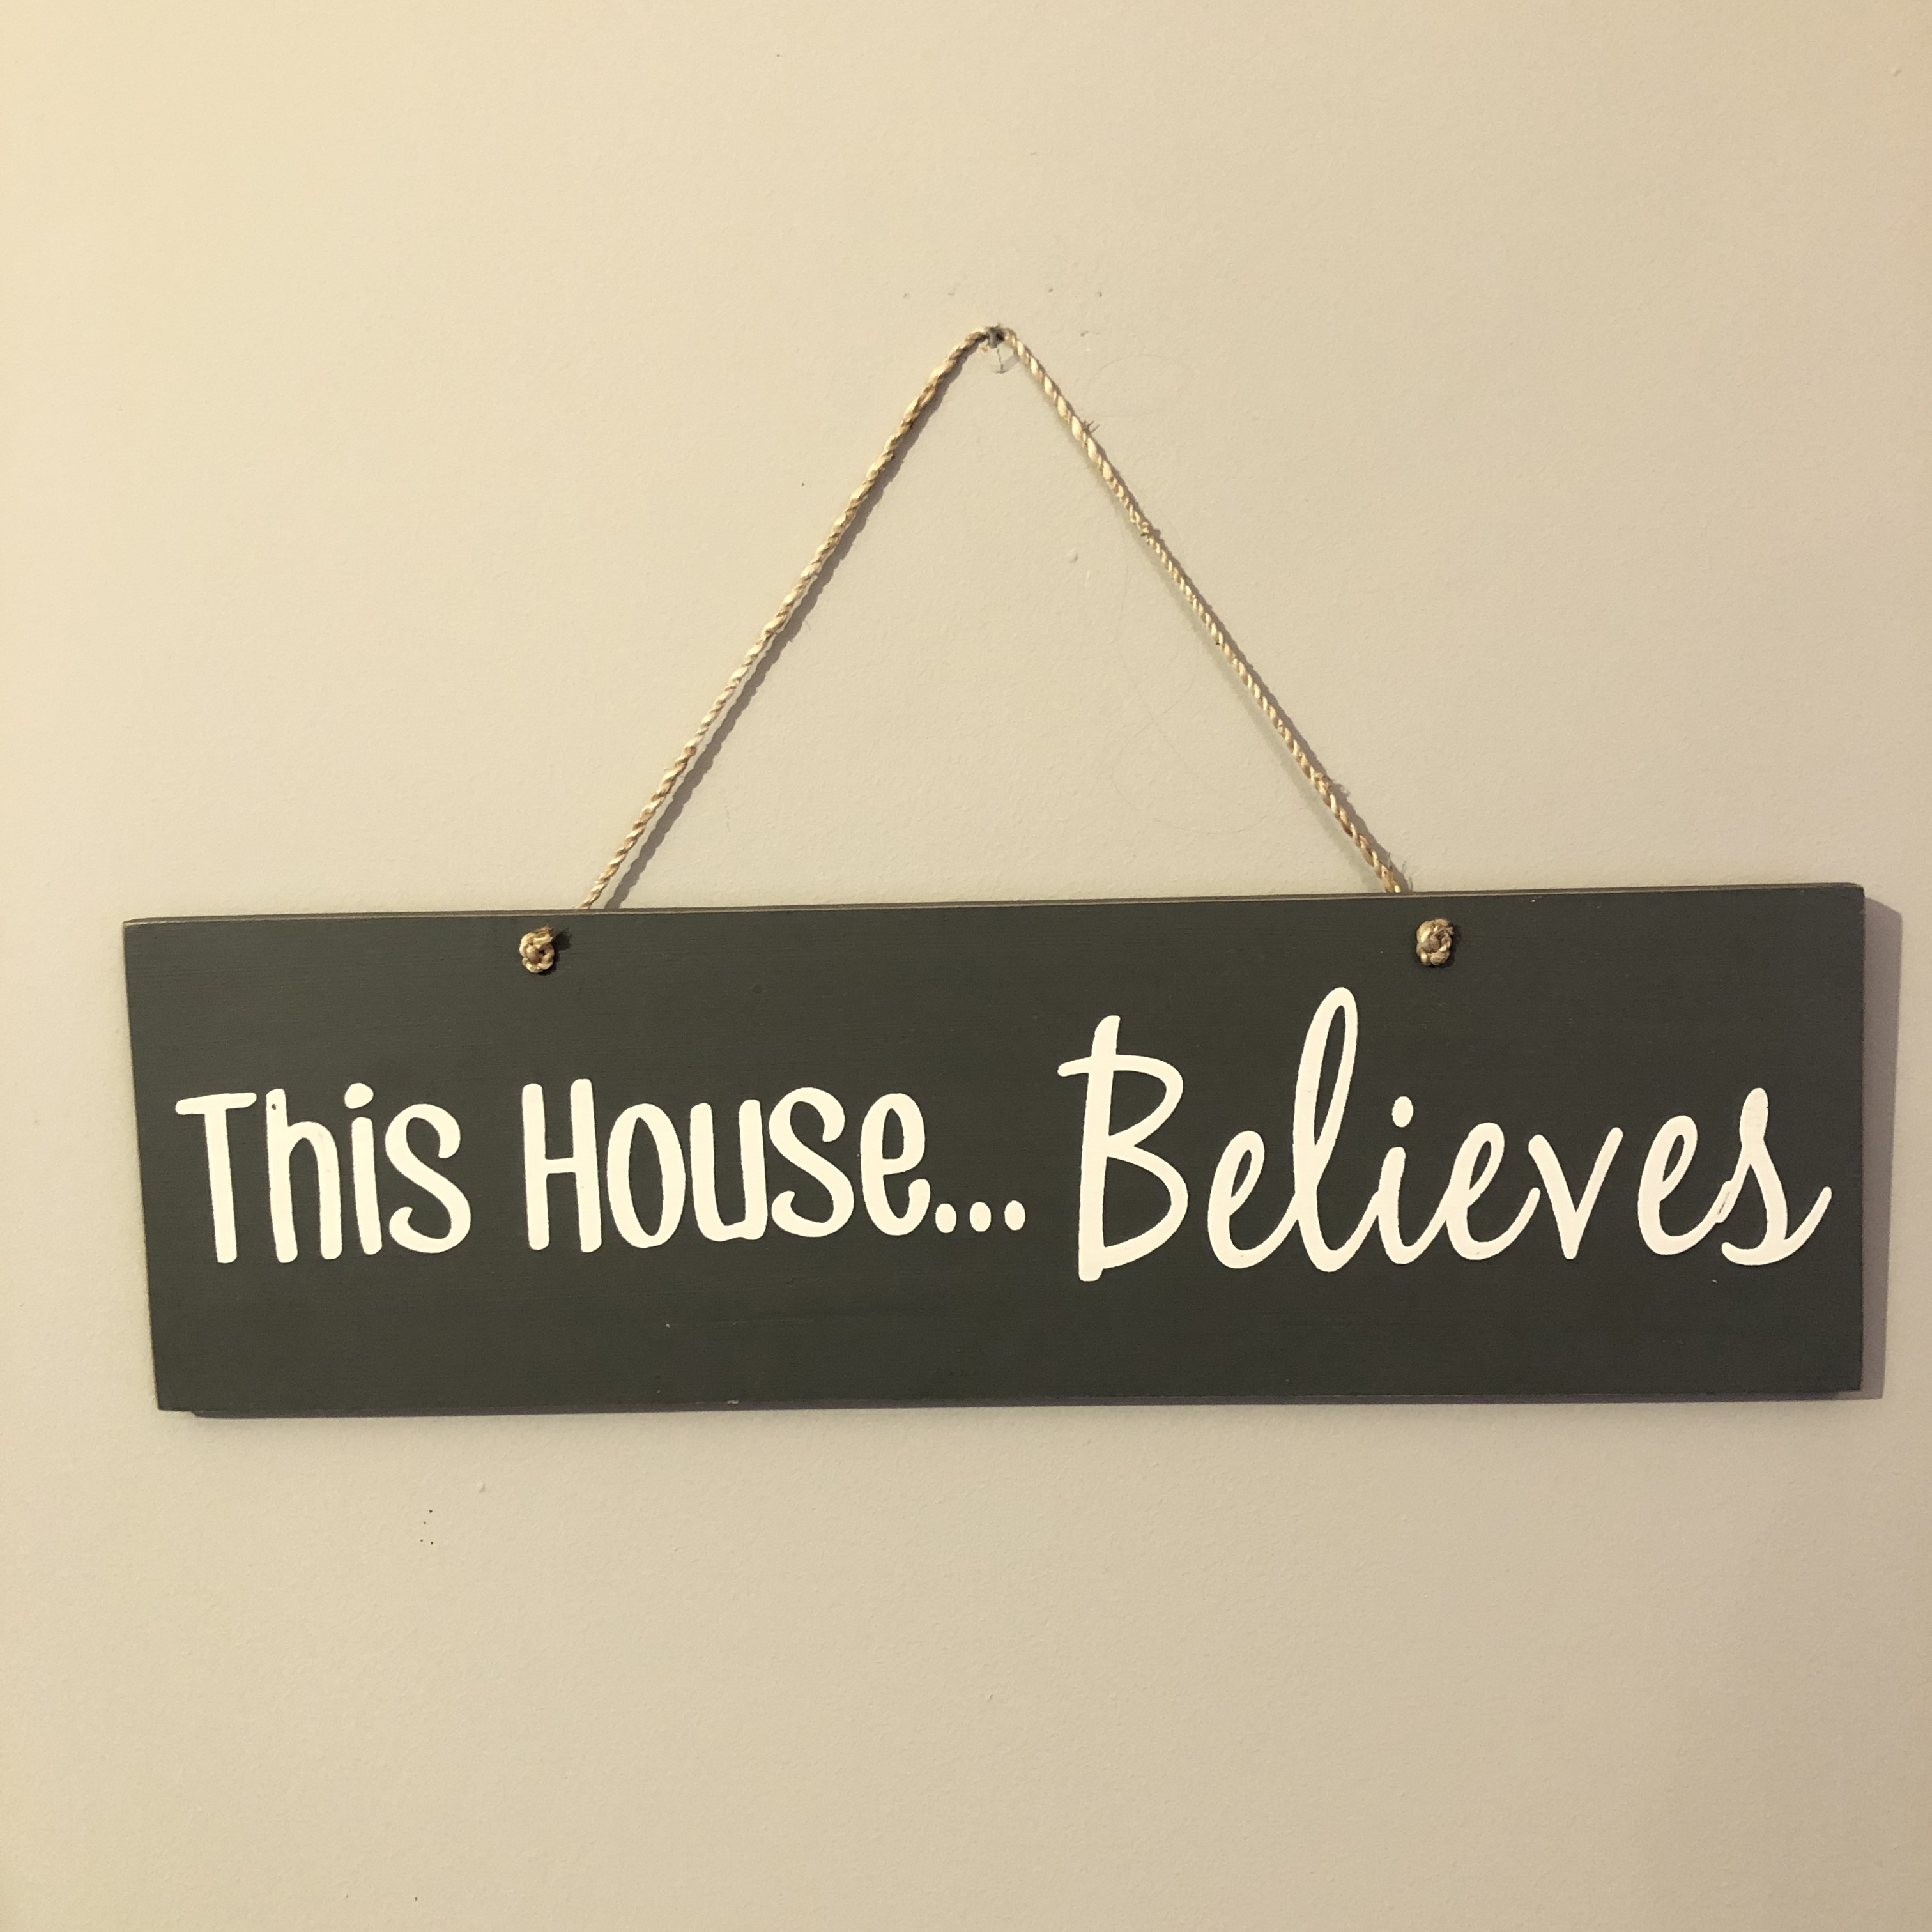 This house  believes hanging wooden Christmas sign by shoeless joe.